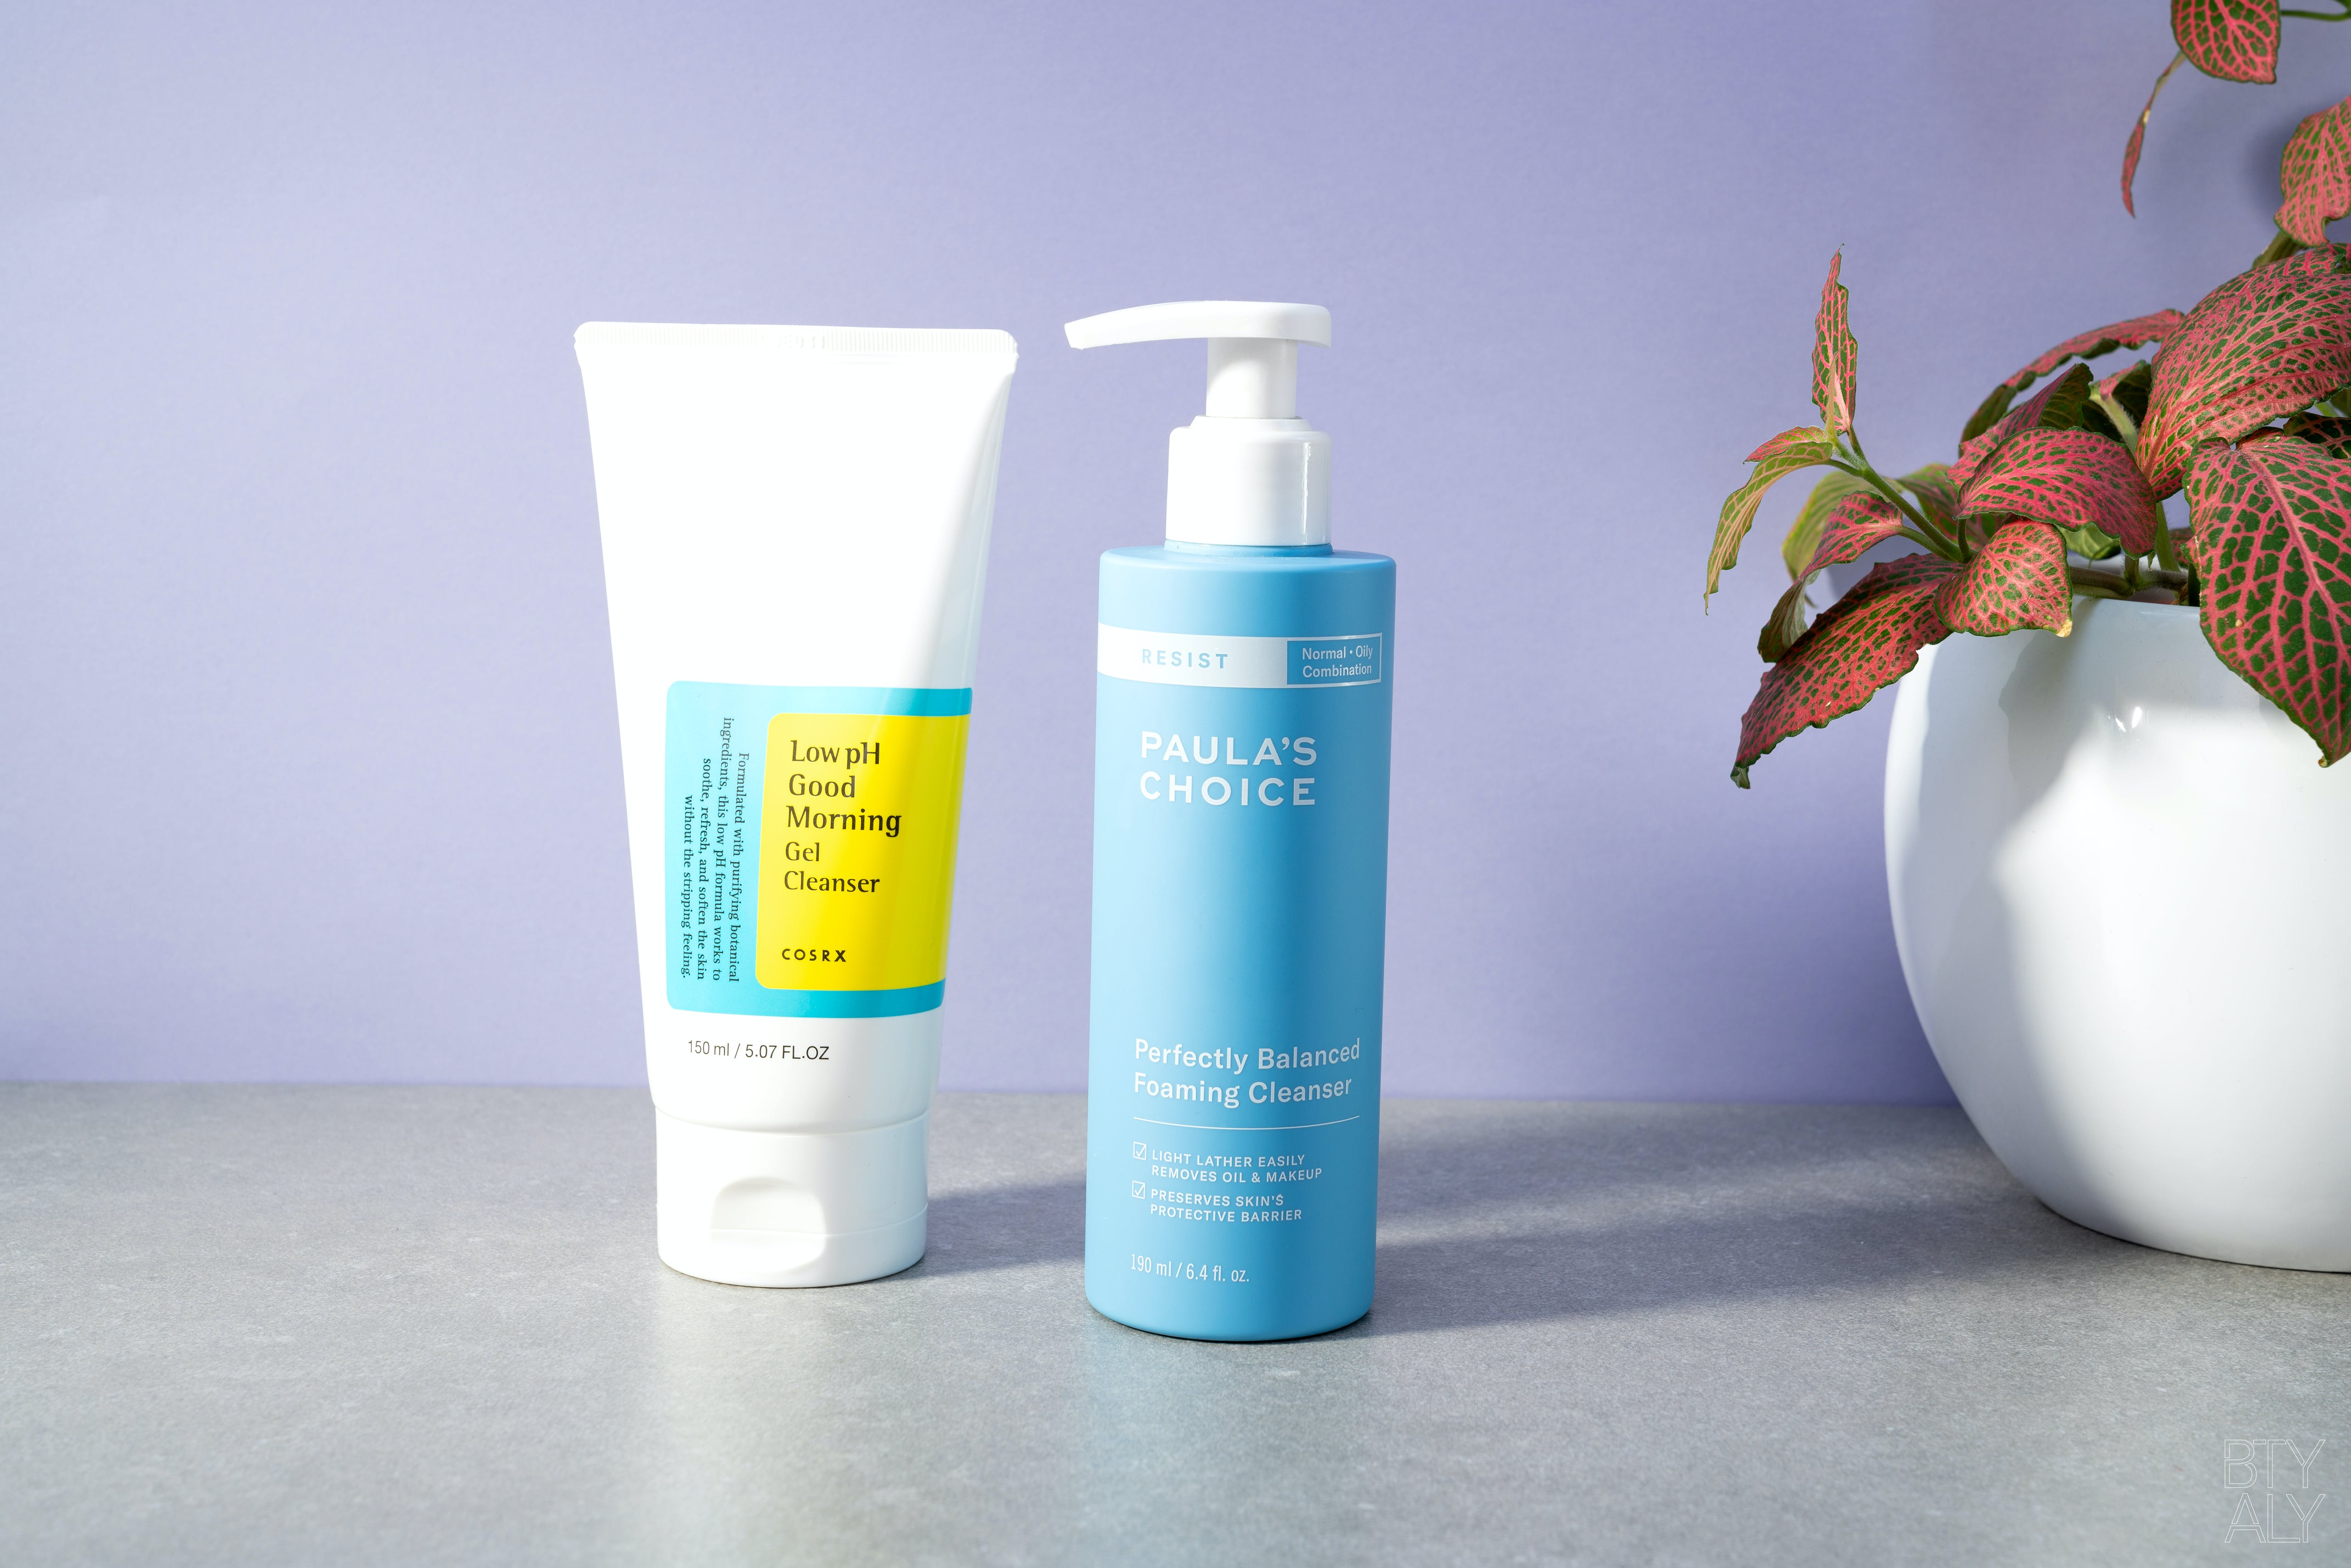 Paula's Choice Perfectly Balanced Foaming Cleanser, Cosrx Low pH Good Morning Gel Cleanser